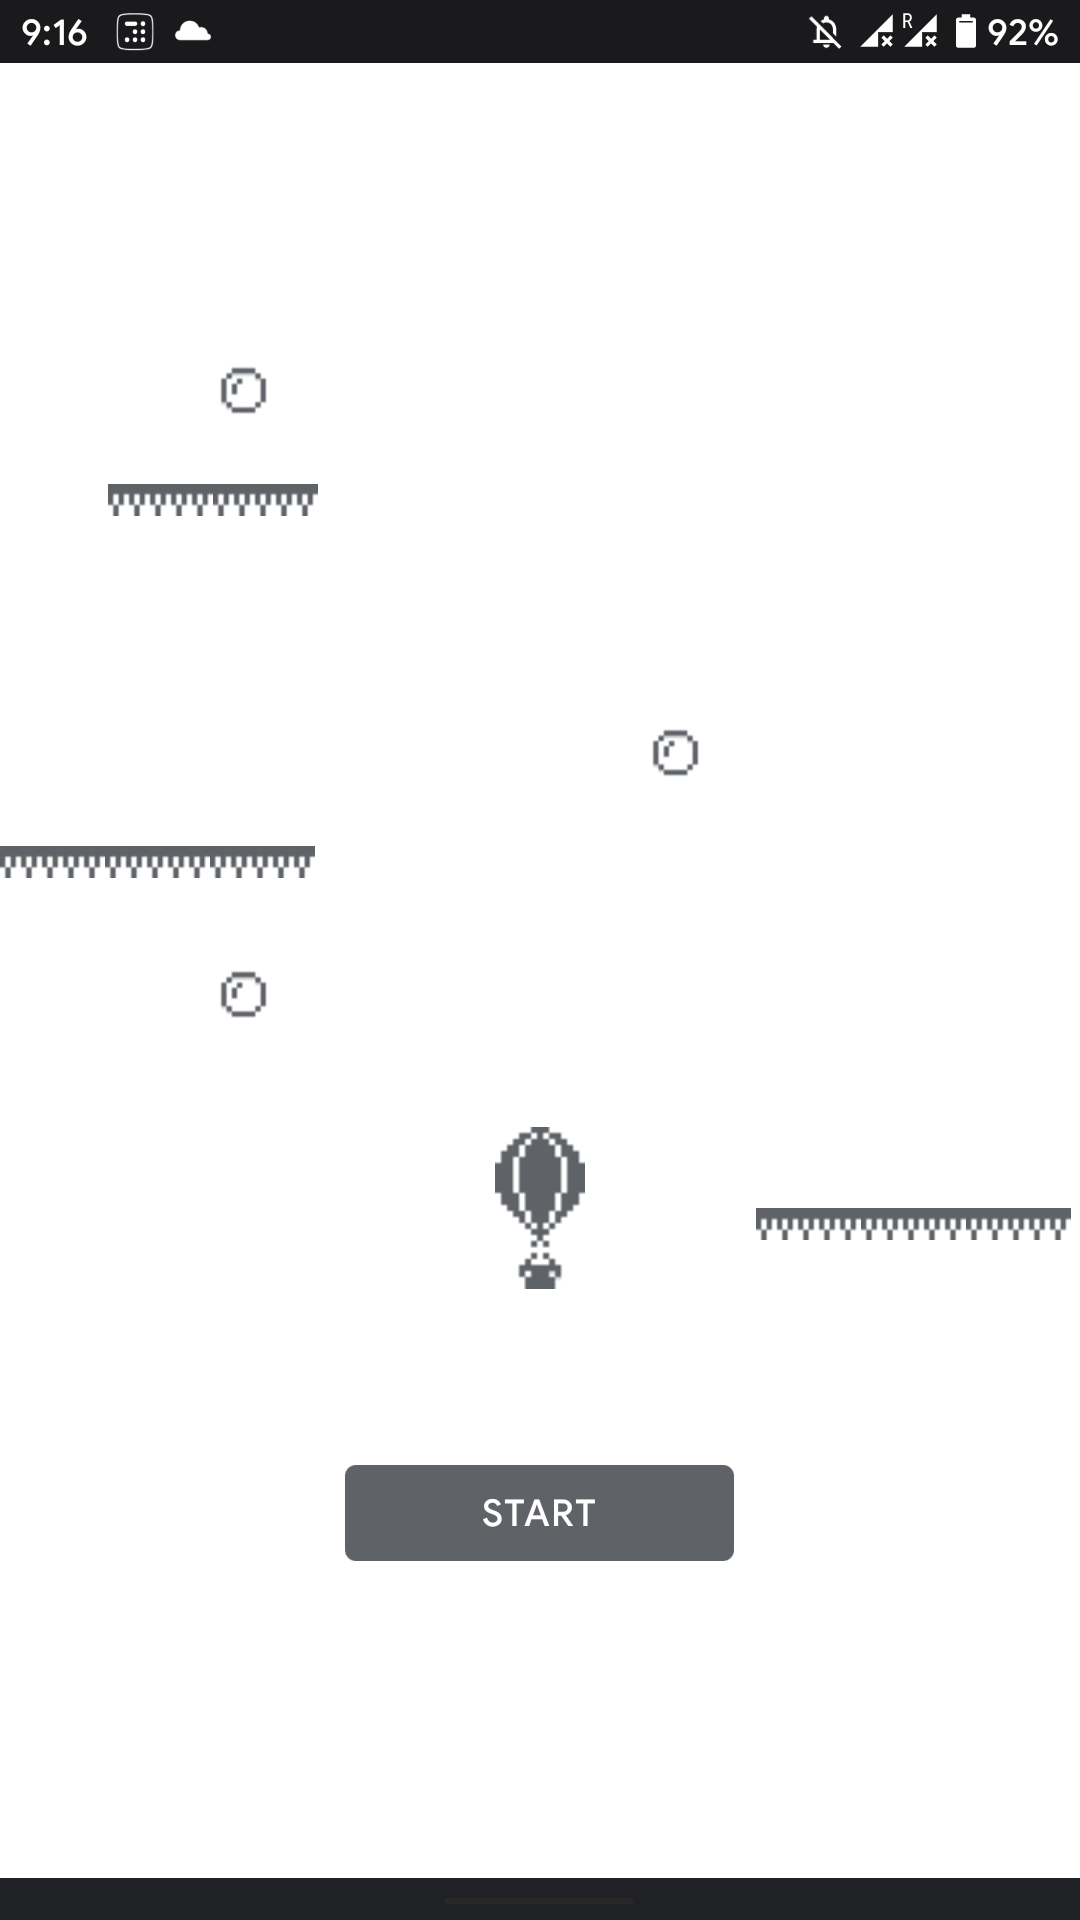 Gra offline Hot Air Balloon w Google Play Store (źródło: Android Police)